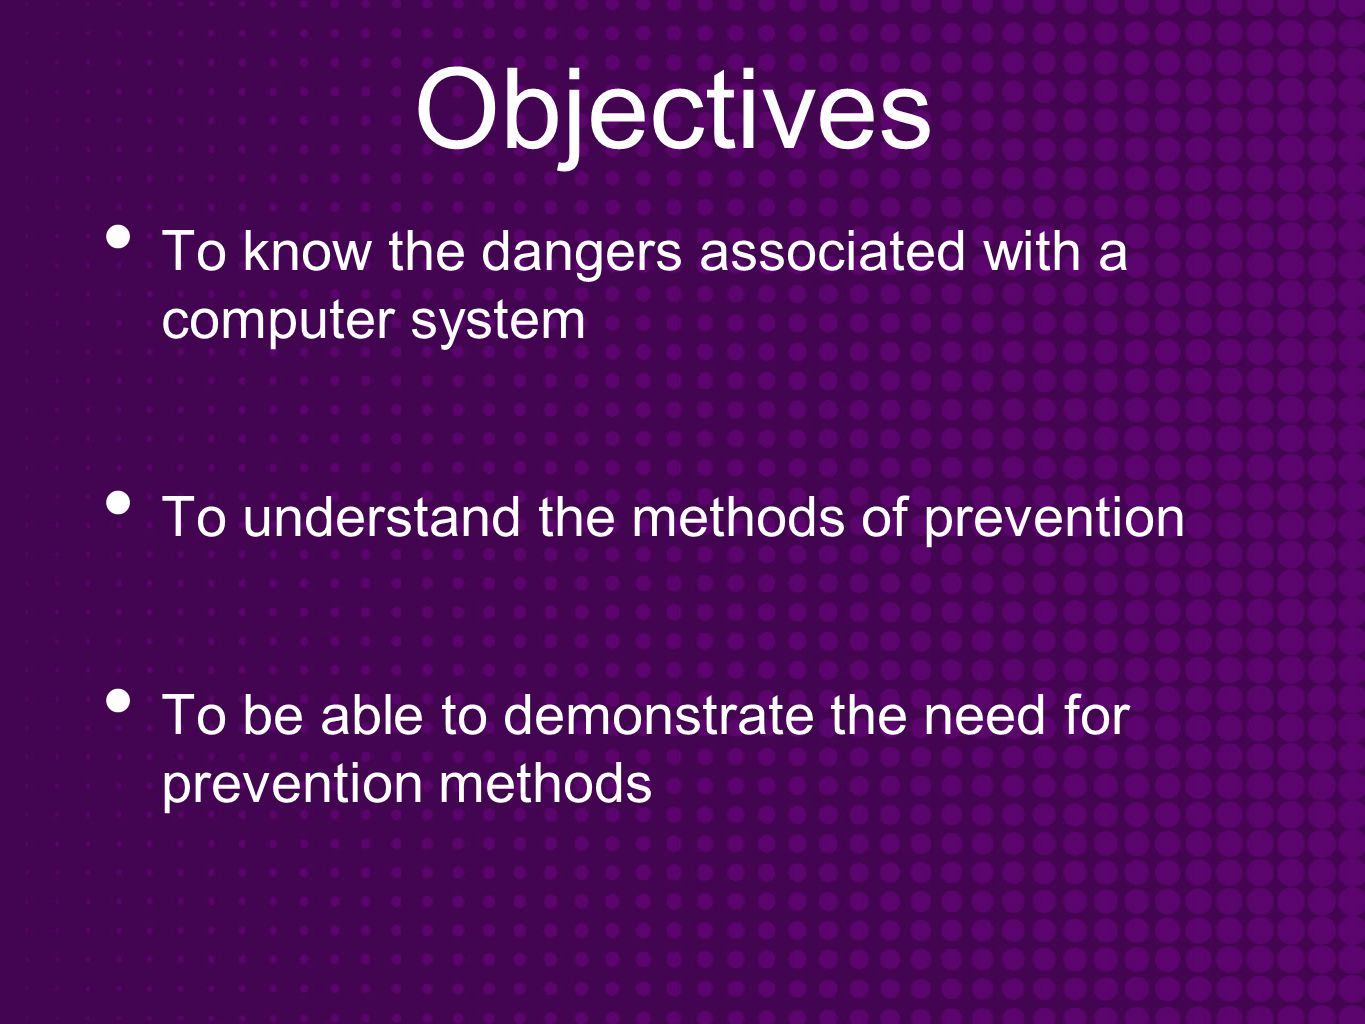 Objectives To know the dangers associated with a computer system To understand the methods of prevention To be able to demonstrate the need for prevention methods